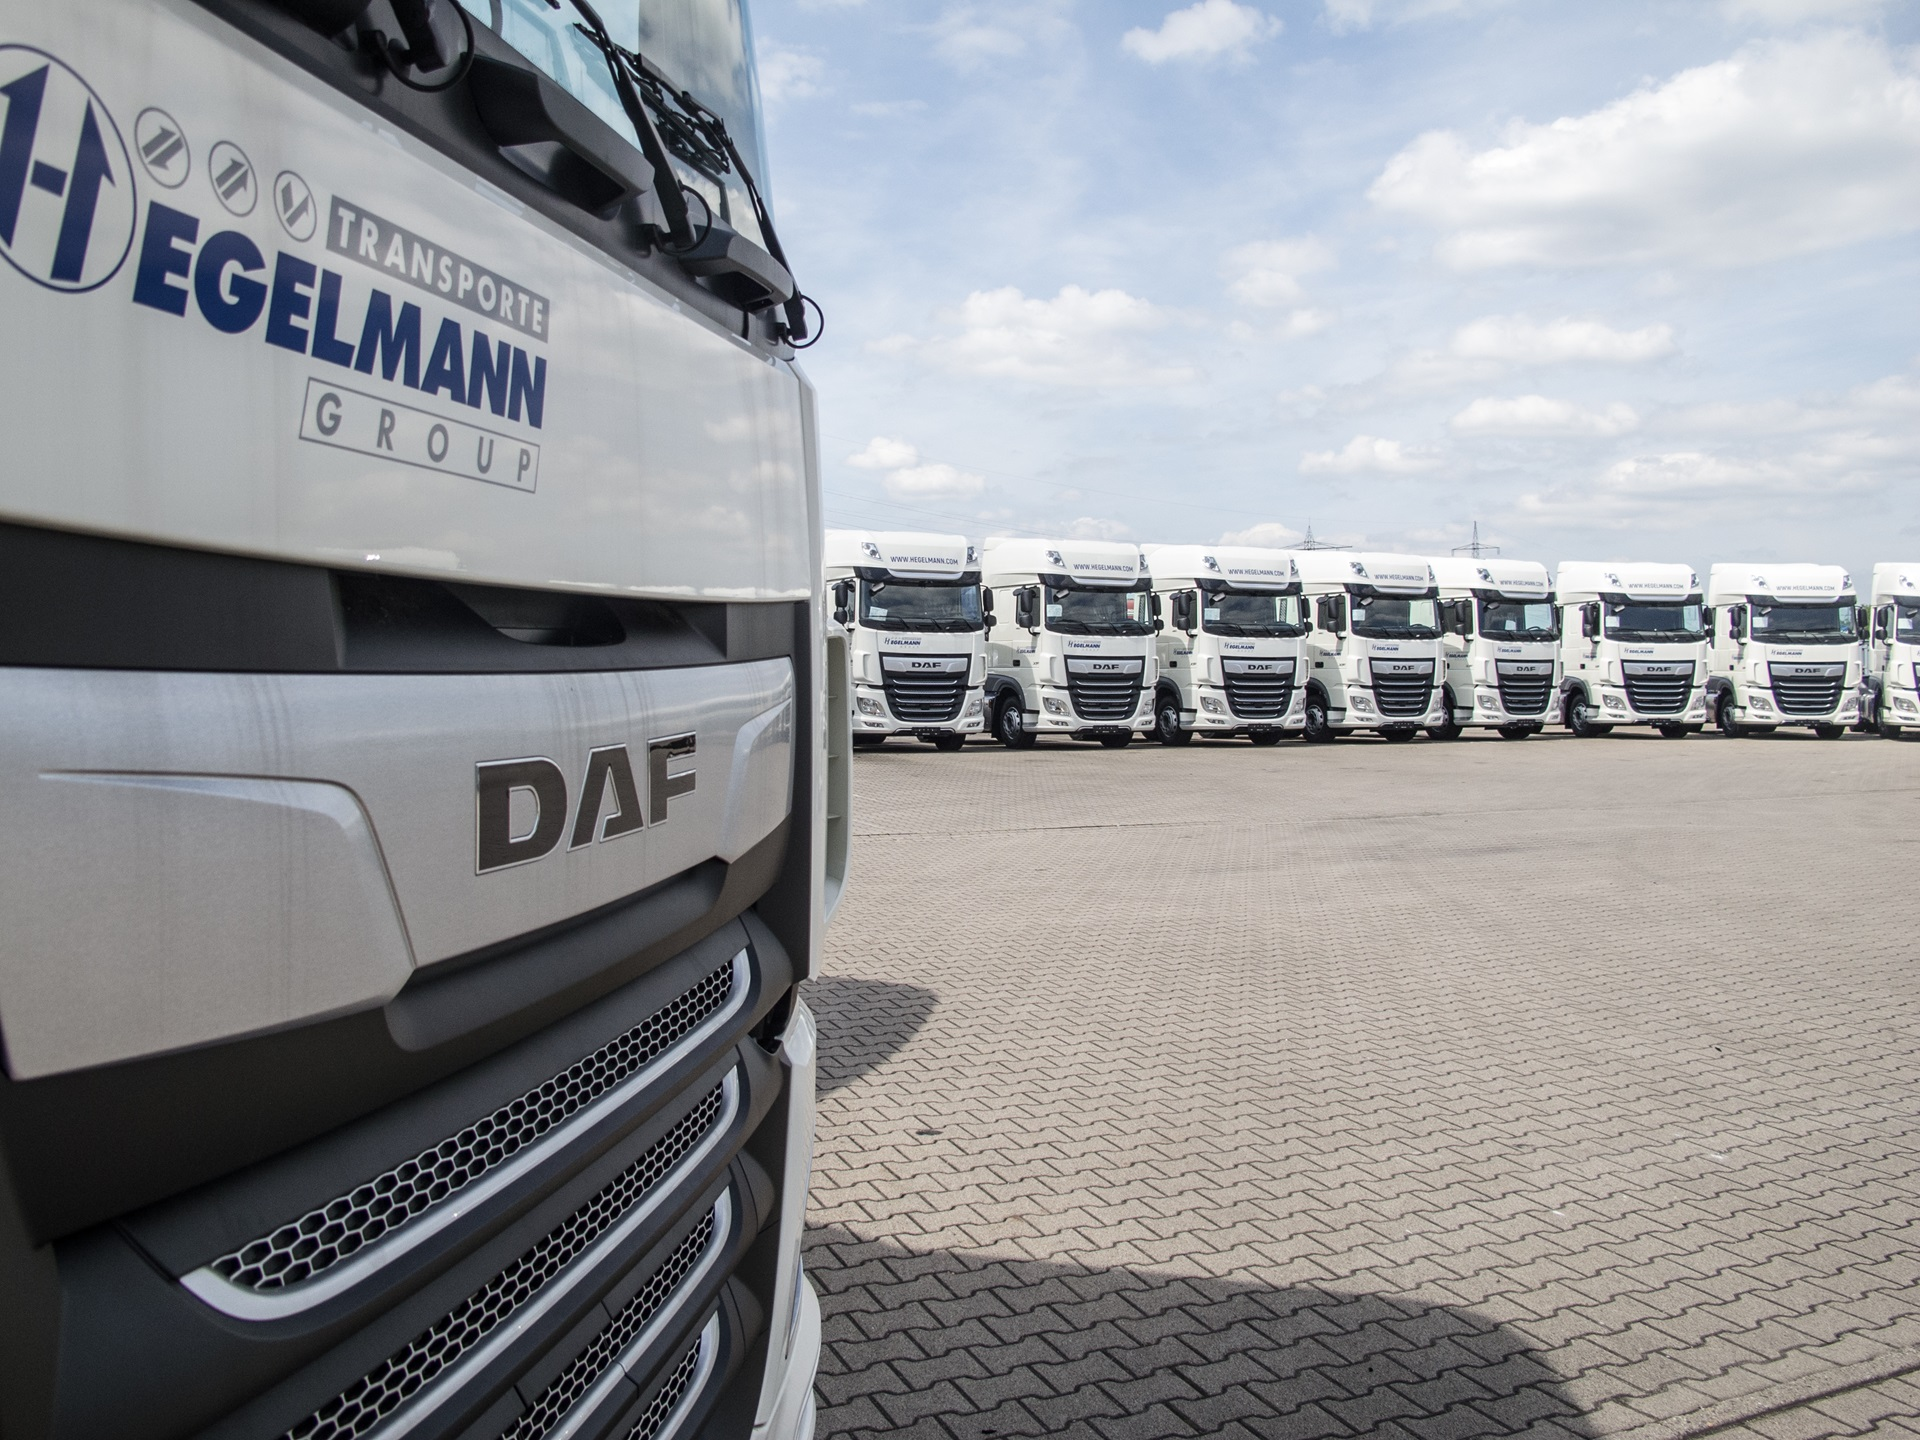 540-DAF-XFs-for-Hegelmann-Transporte-Group